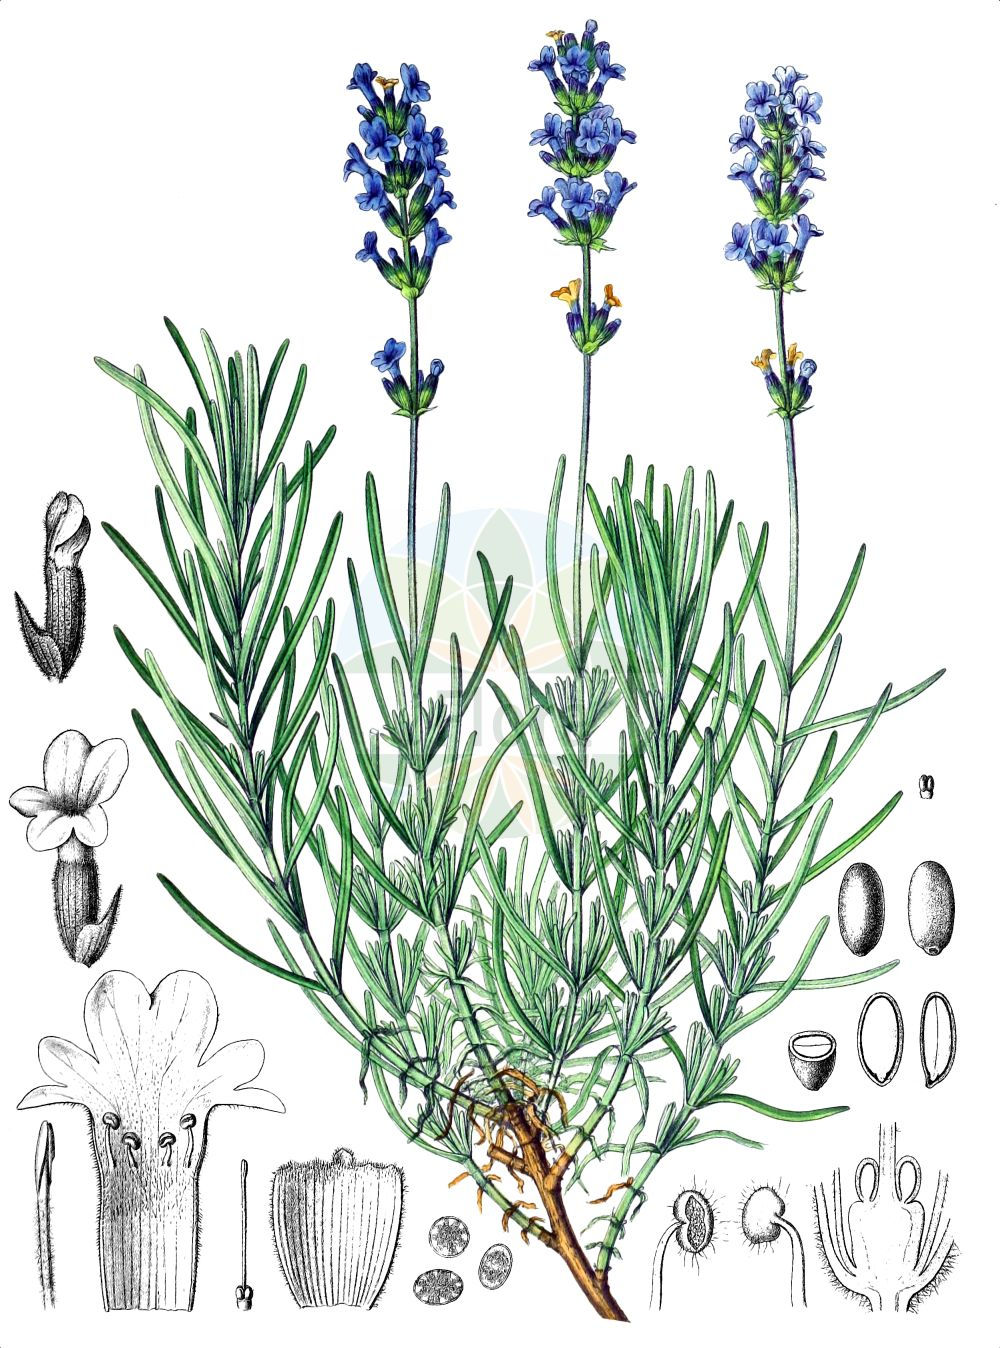 Historische Abbildung von Lavandula angustifolia (Echter Lavendel - Garden Lavender). Das Bild zeigt Blatt, Bluete, Frucht und Same. ---- Historical Drawing of Lavandula angustifolia (Echter Lavendel - Garden Lavender).The image is showing leaf, flower, fruit and seed.(Lavandula angustifolia,Echter Lavendel,Garden Lavender,Lavandula angustifolia,Echter Lavendel,Schmalblatt-Lavendel,Schmalblaettriger Lavendel,Garden Lavender,Common Lavender,English Lavender,Lavender,French Lavender,Lavandula,Lavendel,Lavender,Lamiaceae,Lippenbluetengewaechse,Lippenbluetler,Nettle family,Blatt,Bluete,Frucht,Same,leaf,flower,fruit,seed,Berg & Schmidt (1894-1896))